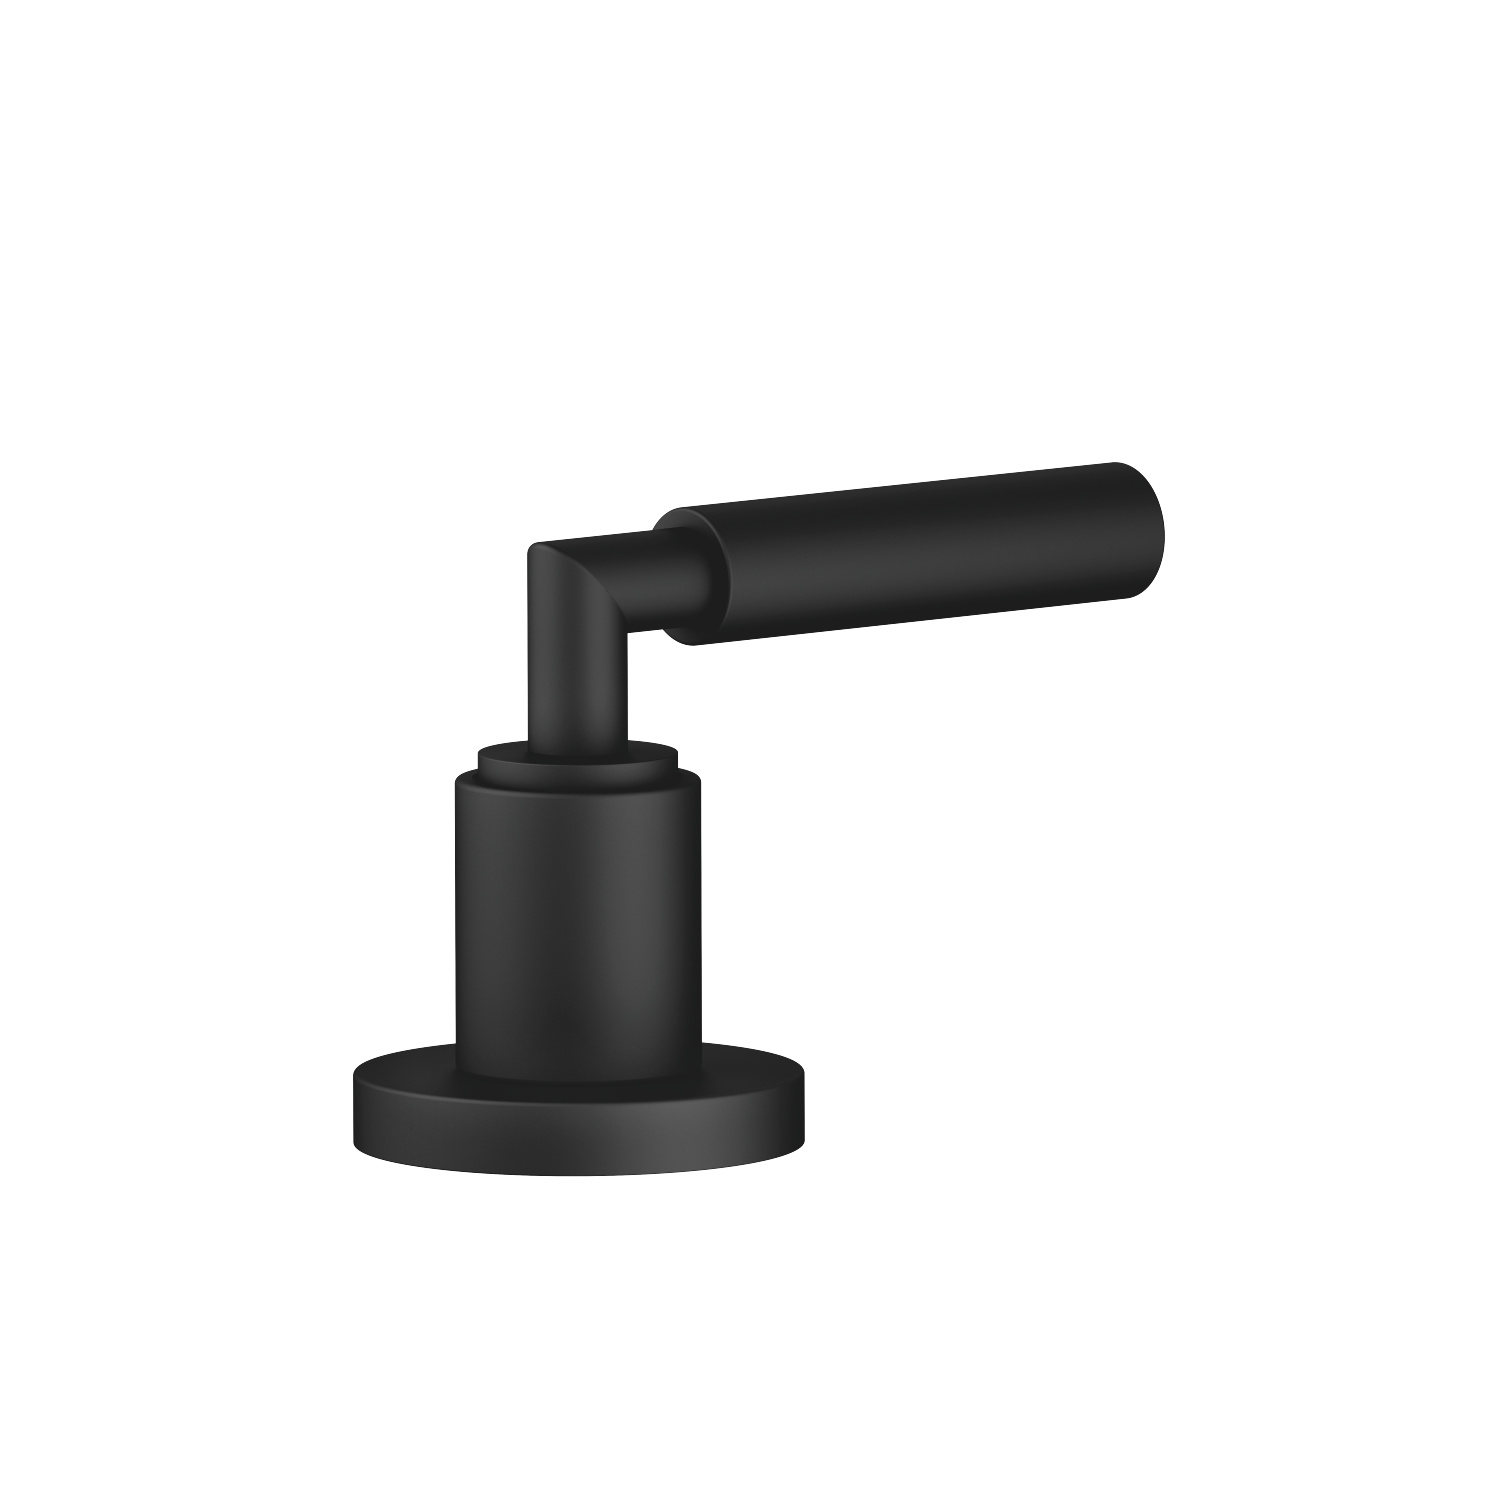 Deck valve counter-clockwise closing - black matte